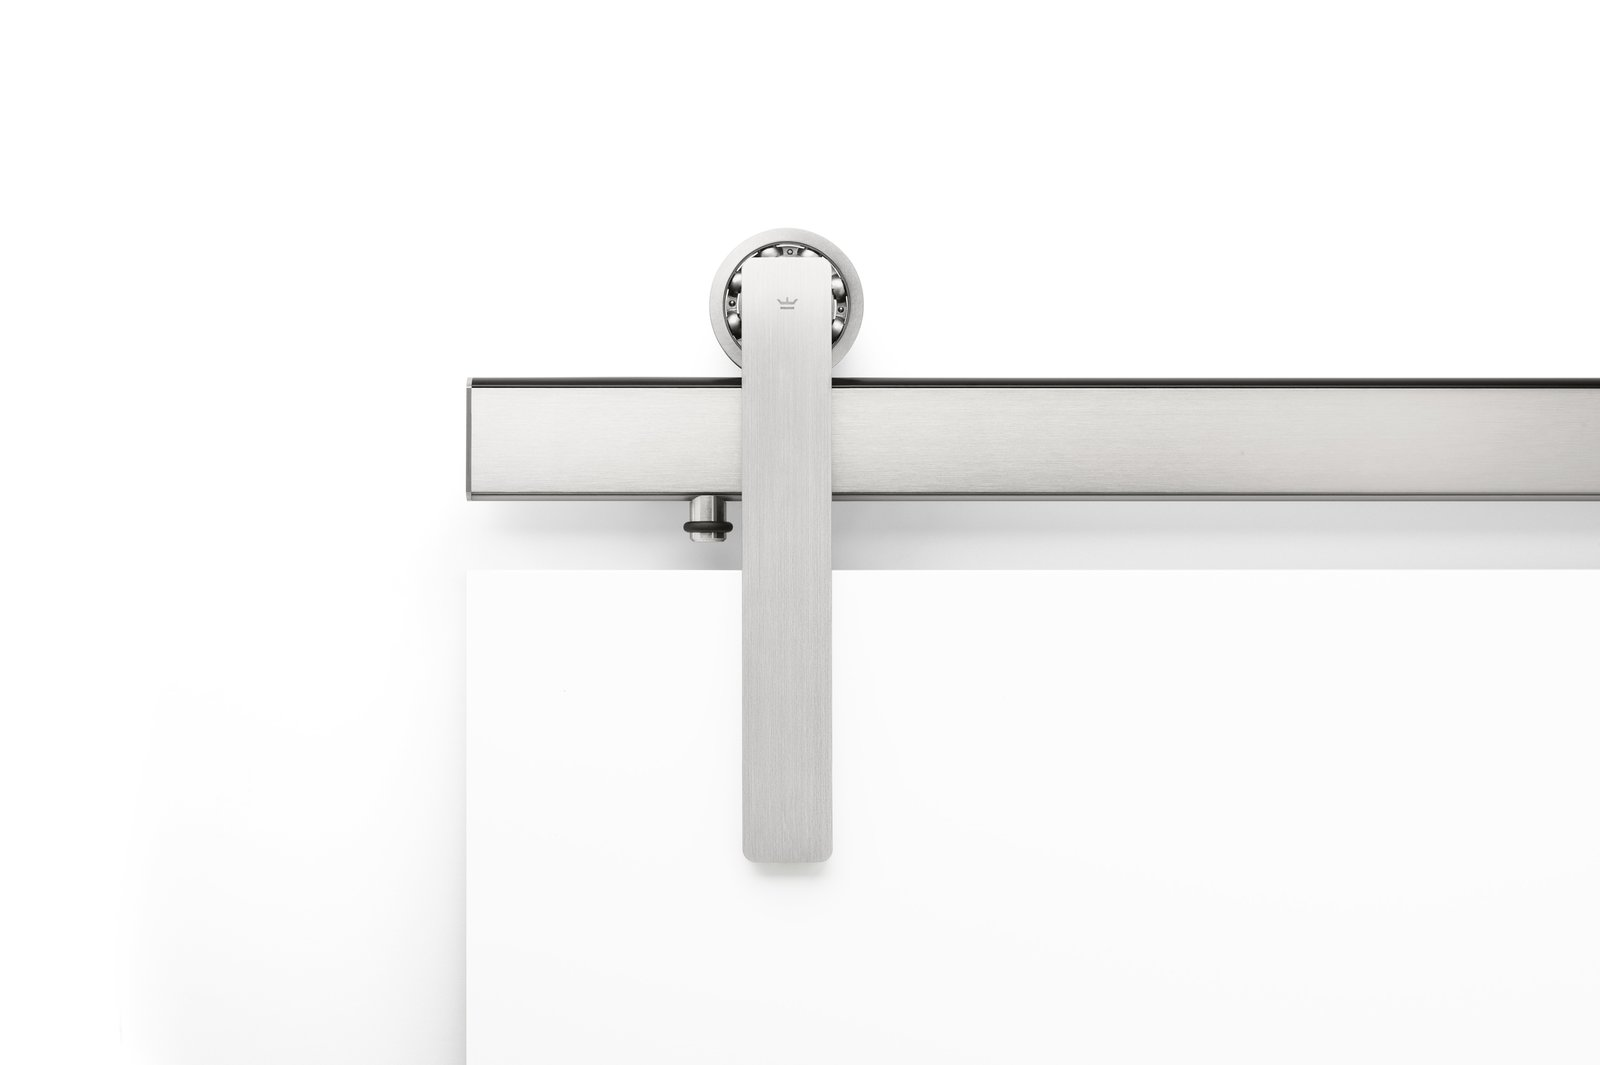 The Ragnar sliding door hardware system in Brushed Stainless finish and Face Mount.  Ragnar Sliding Door Hardware by Krownlab